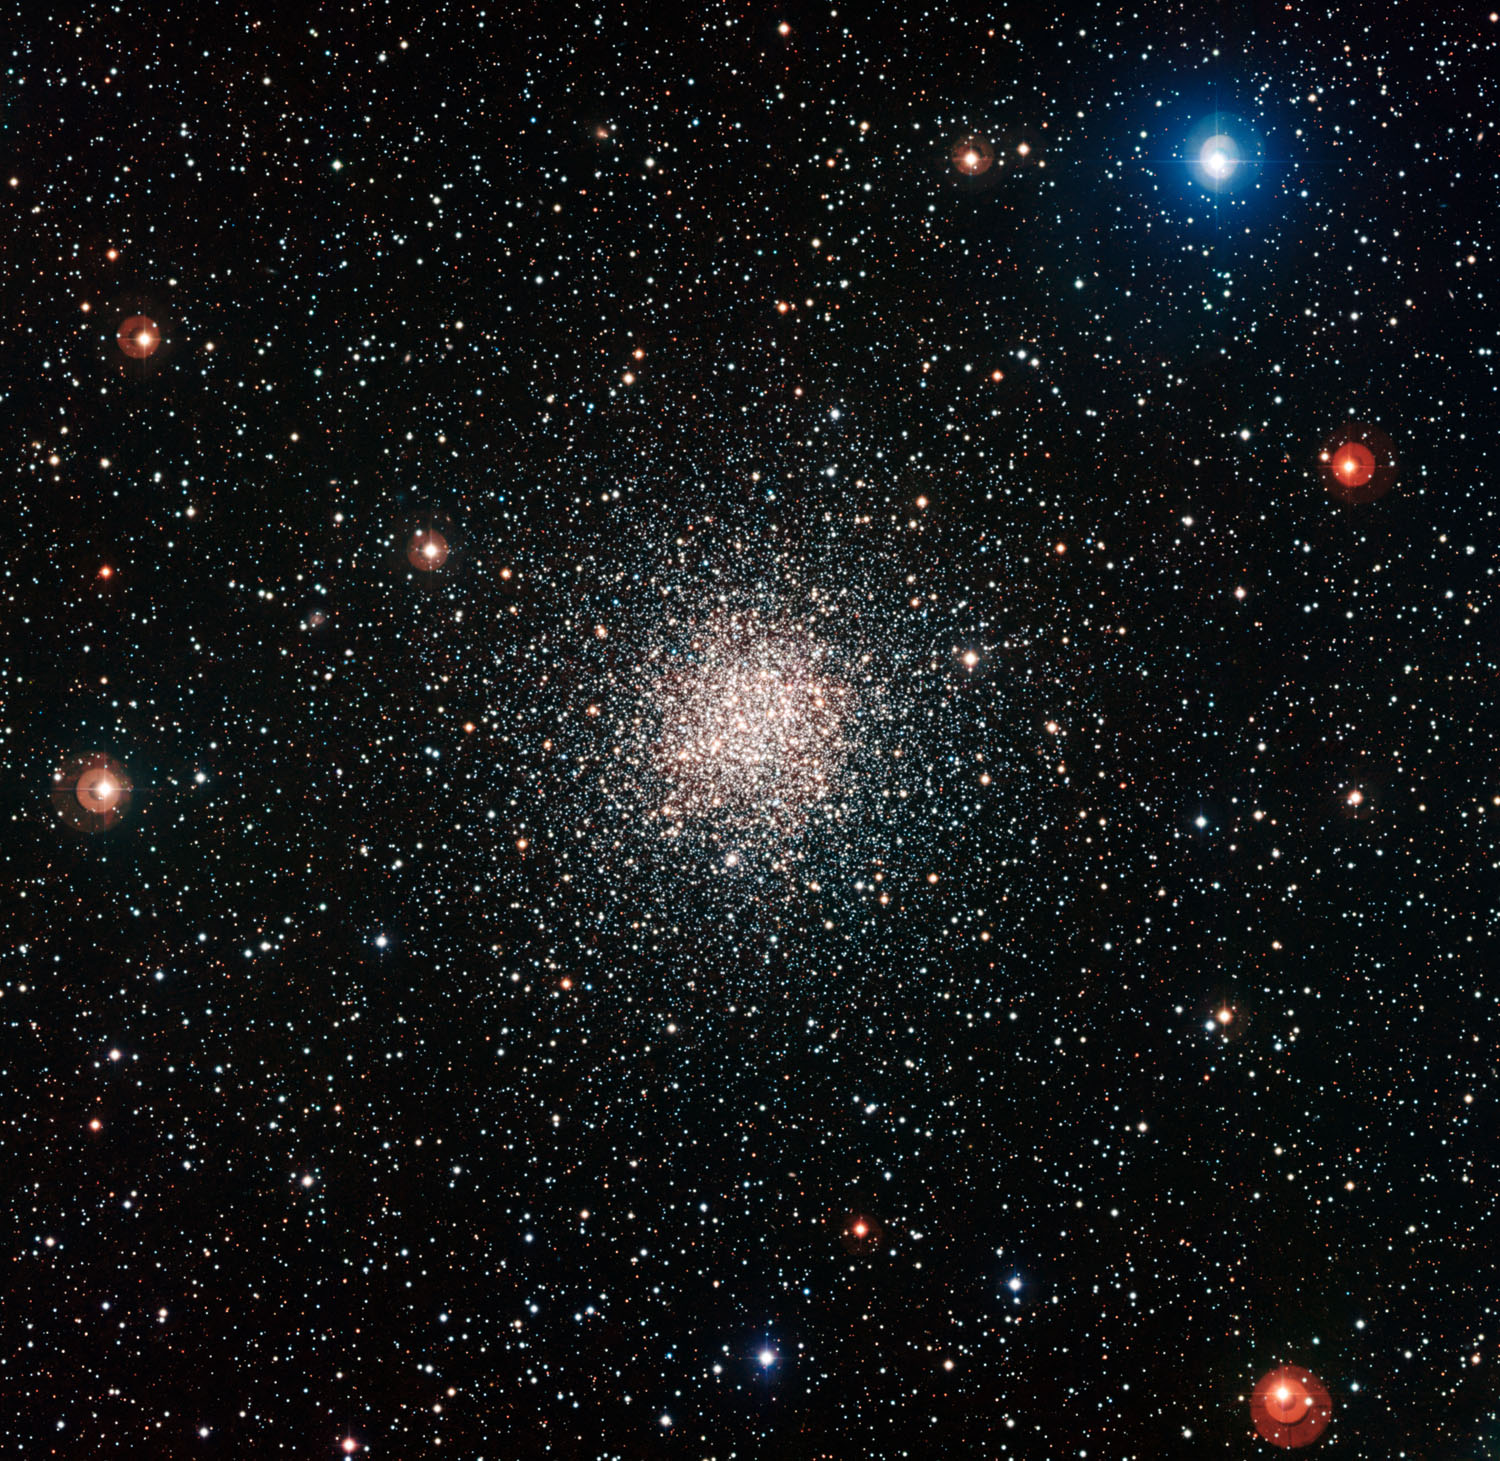 HD Star Cluster - Pics about space